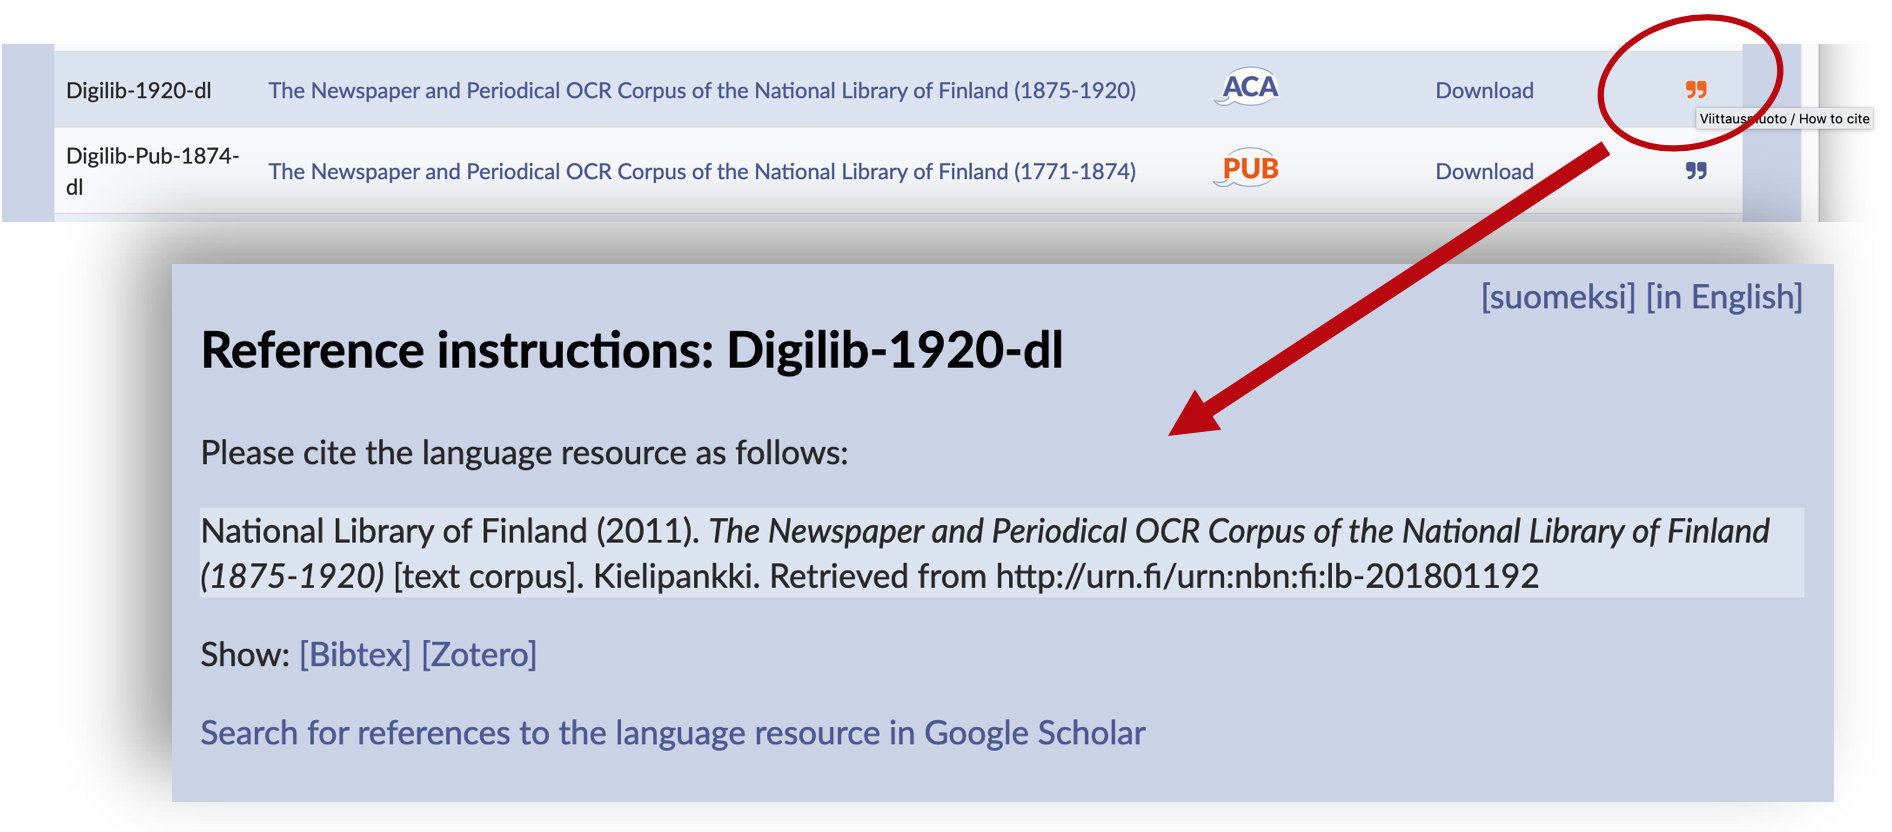 How to locate reference instructions on the list of corpora